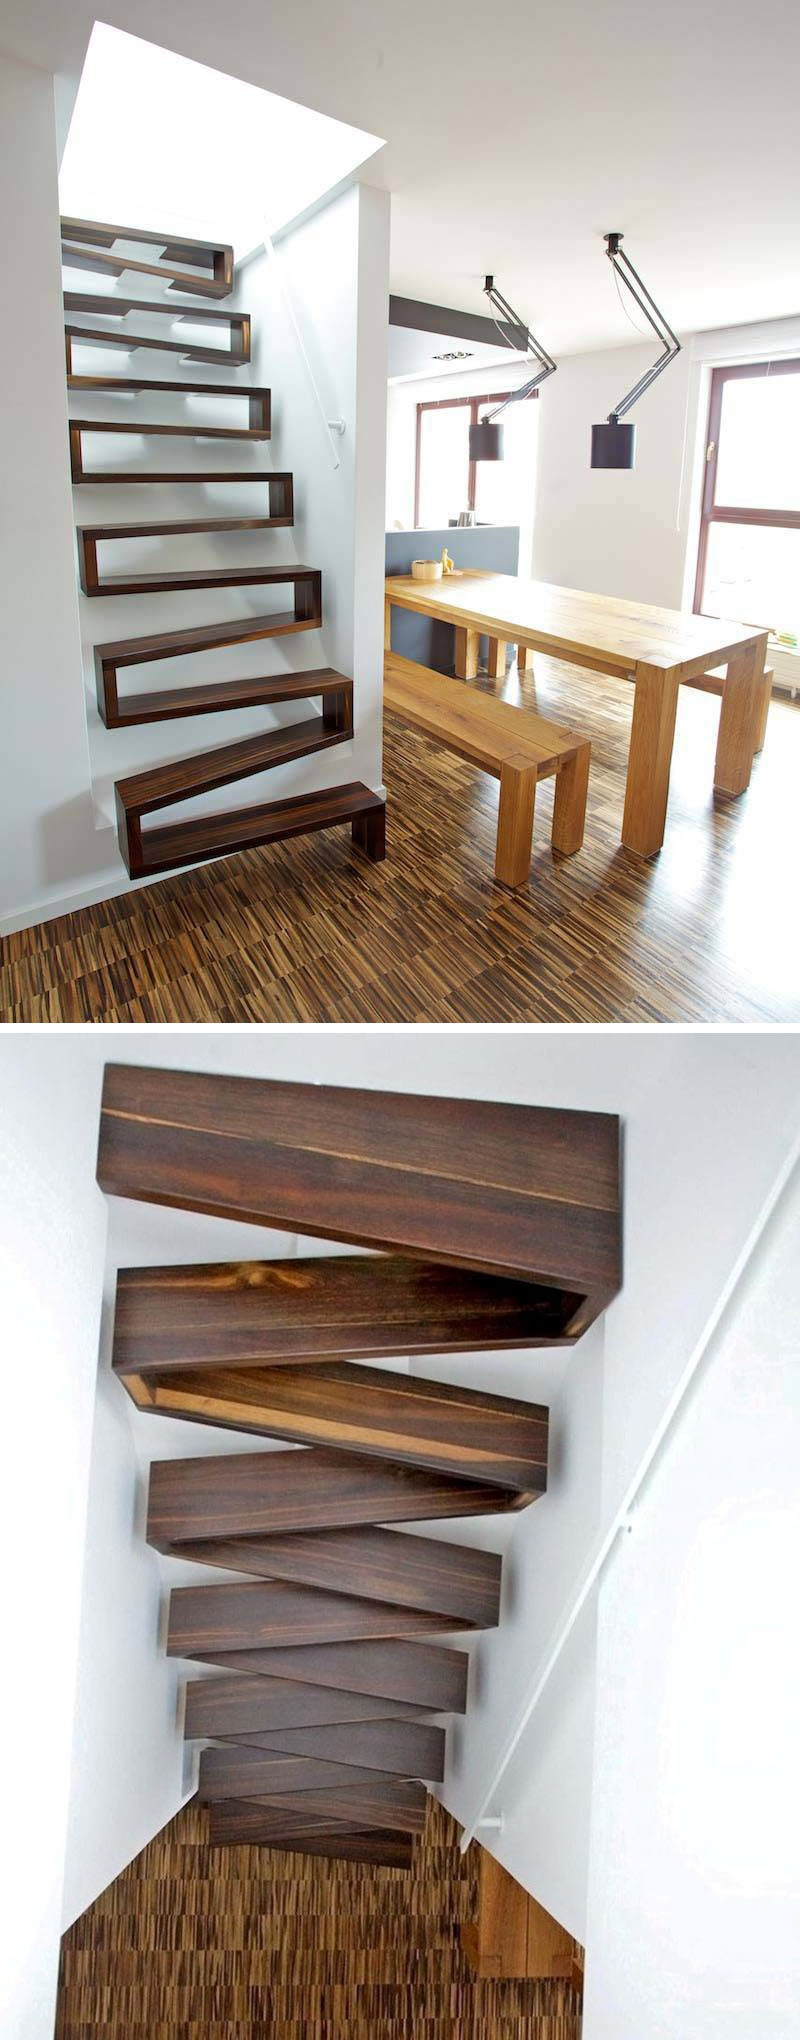 13 Stair Design Ideas For Small Spaces | Ladder Design For Small House | Small Cabin | Inexpensive | Elegant | Easy | Retractable